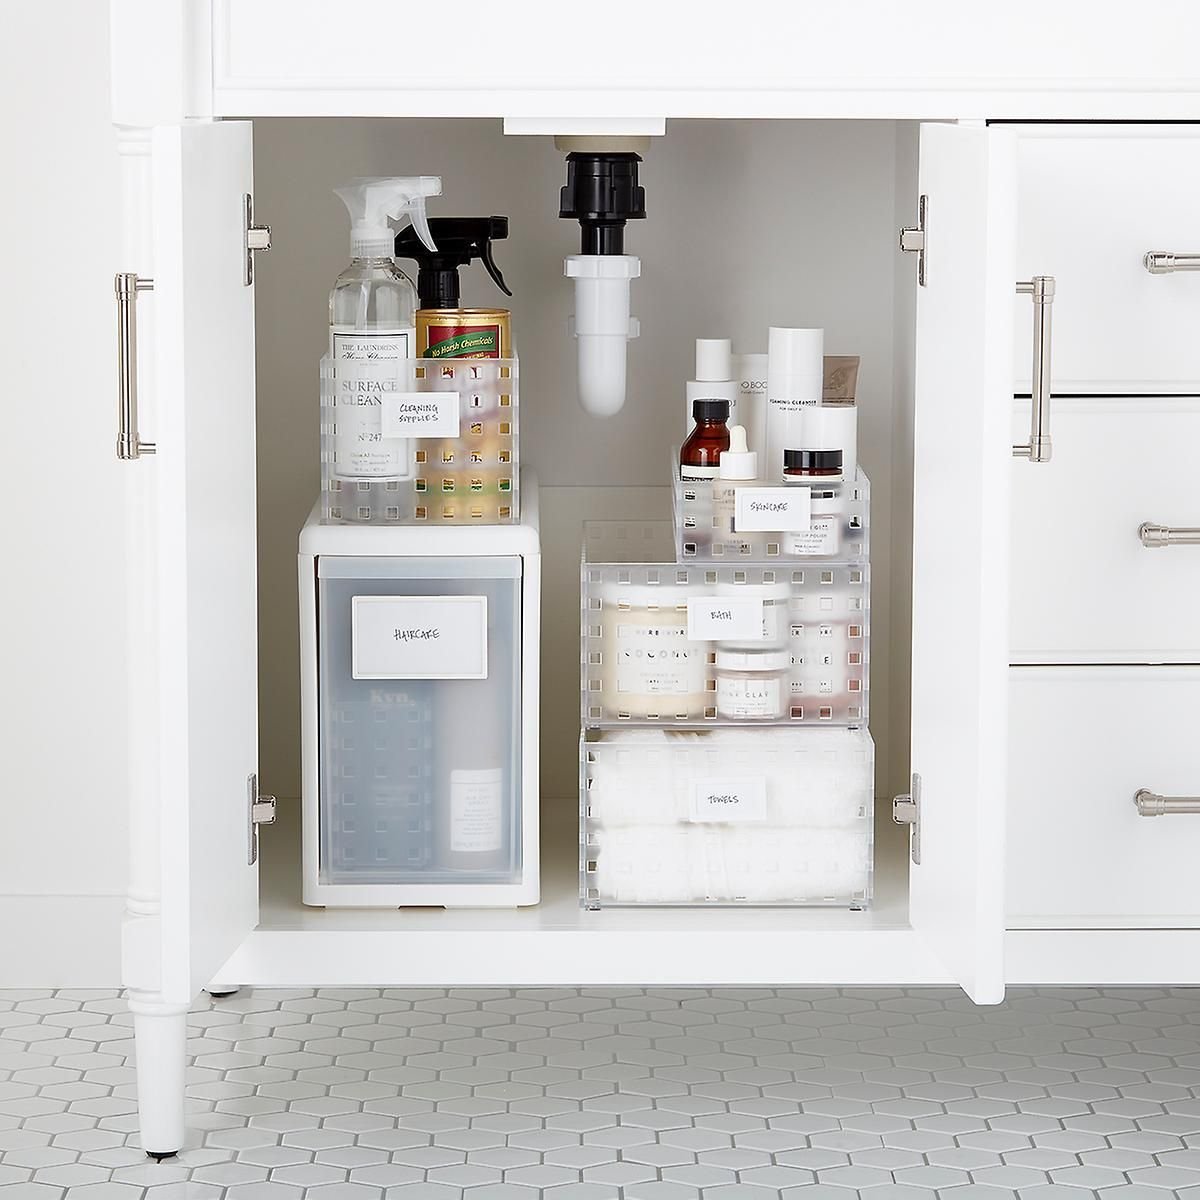 Like It Under The Sink Starter Kit In 2020 Container Store Bathroom Storage Cabinet Sink